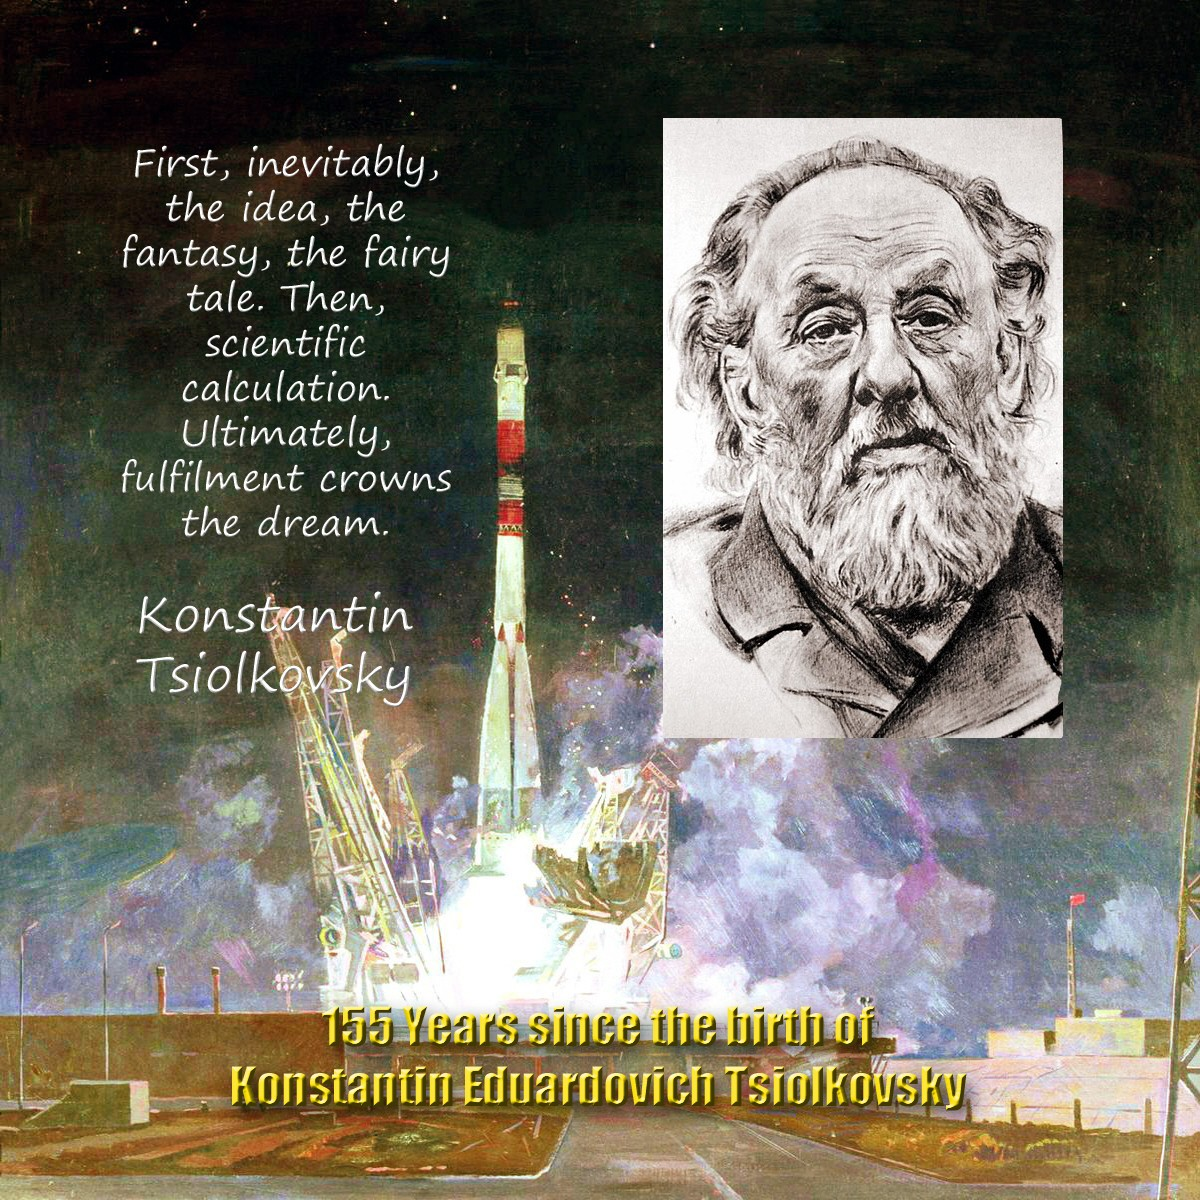 00 155 Anniversay Birth of Tsiolkovsky